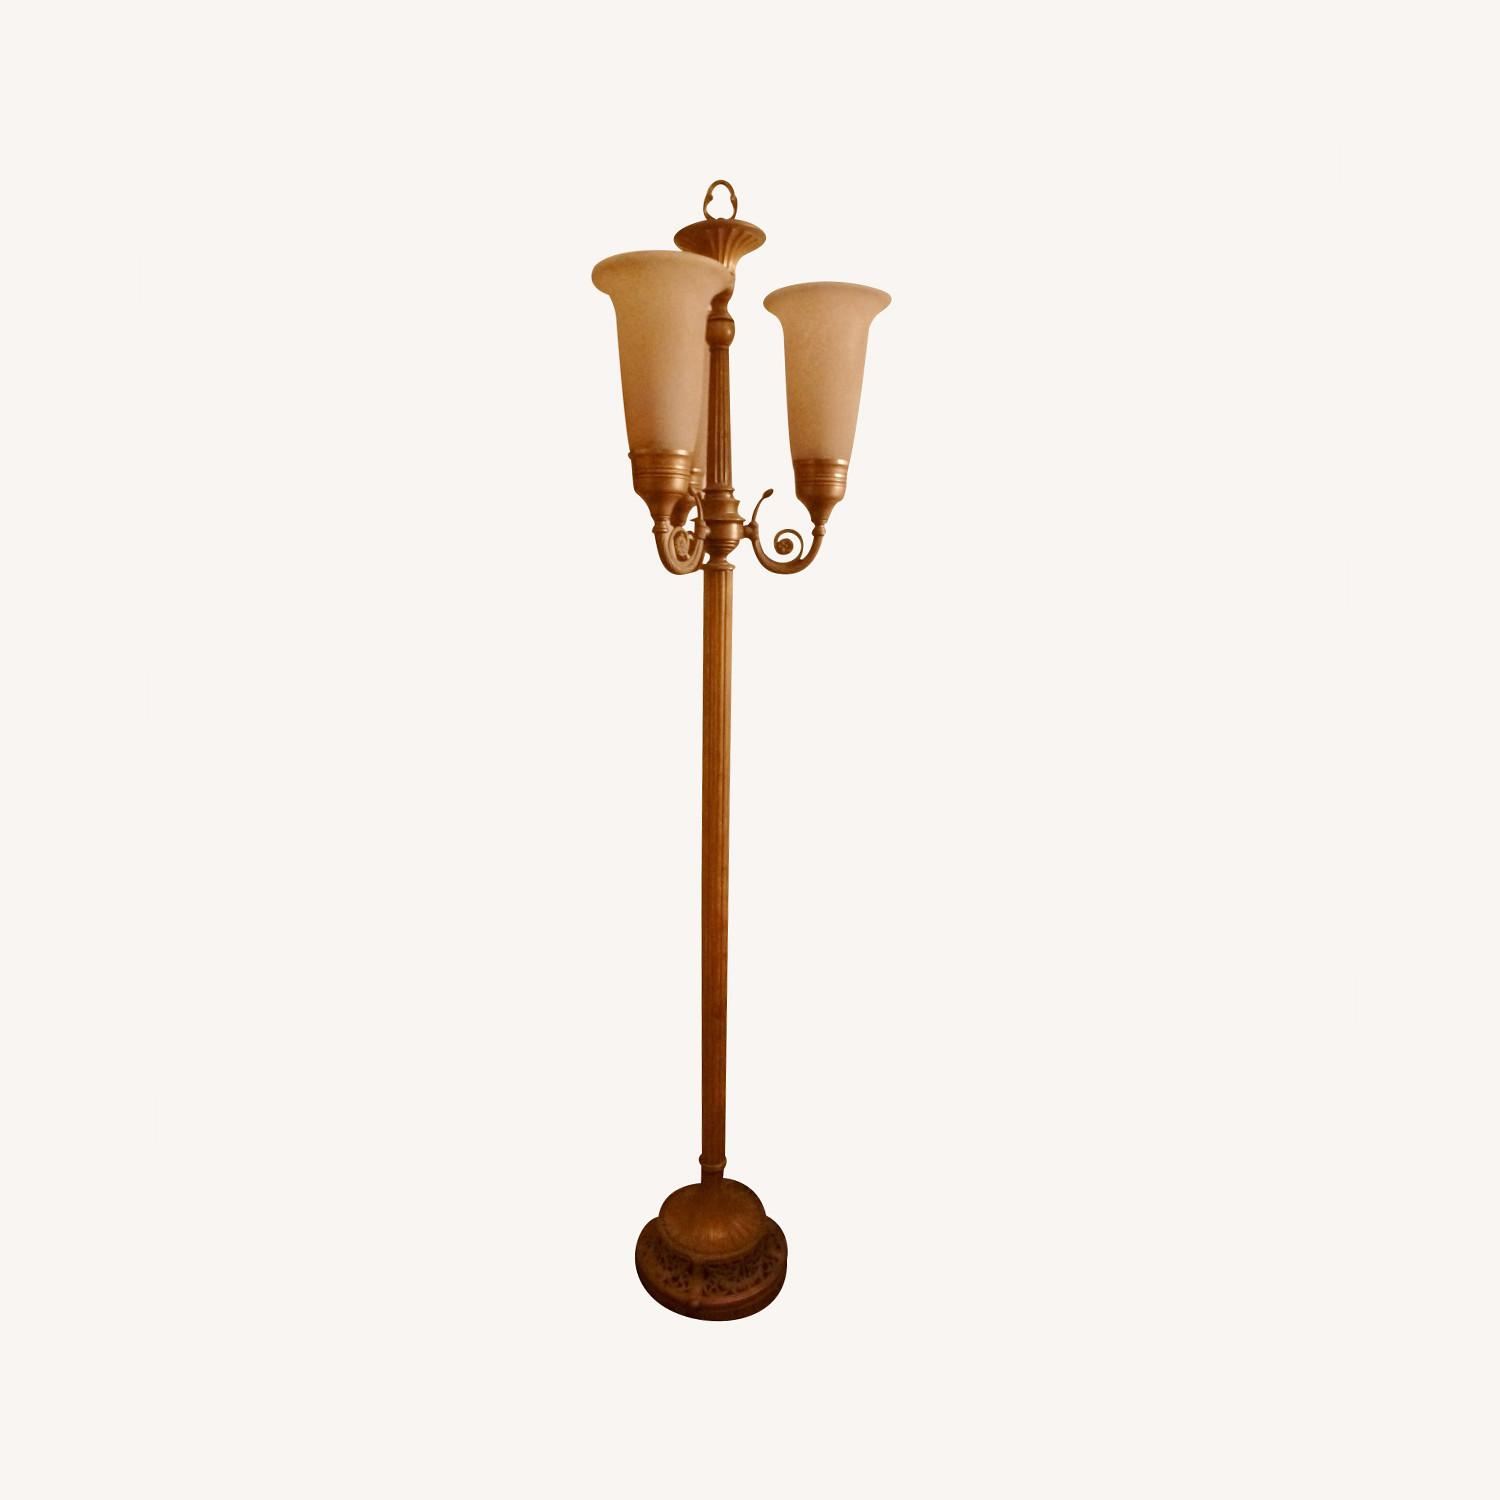 Gold tone Floor Lamp w/3 Lights and Dimmer Switch - image-0